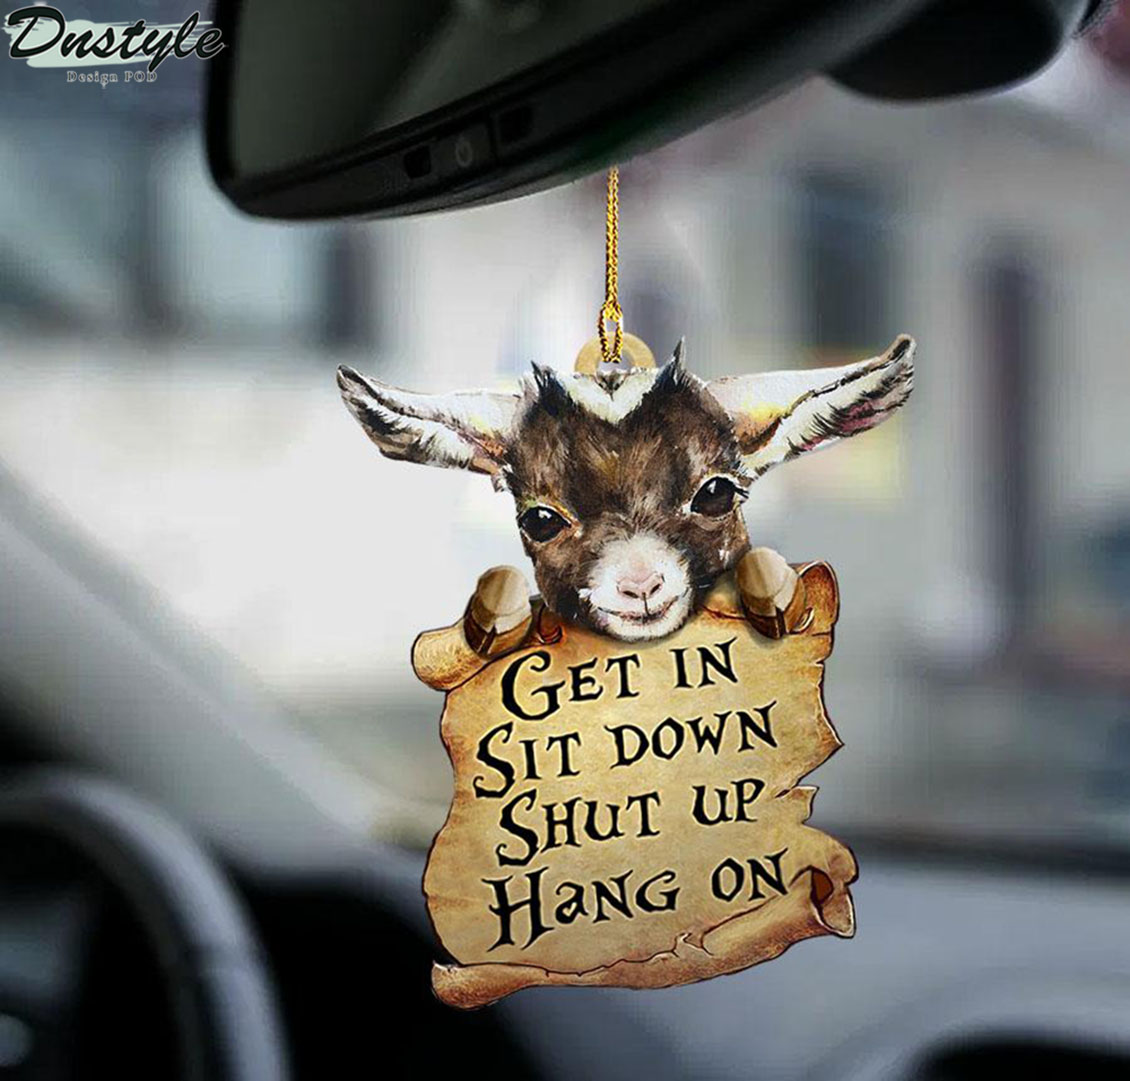 Goat get in sit down shut up hang on ornament 1